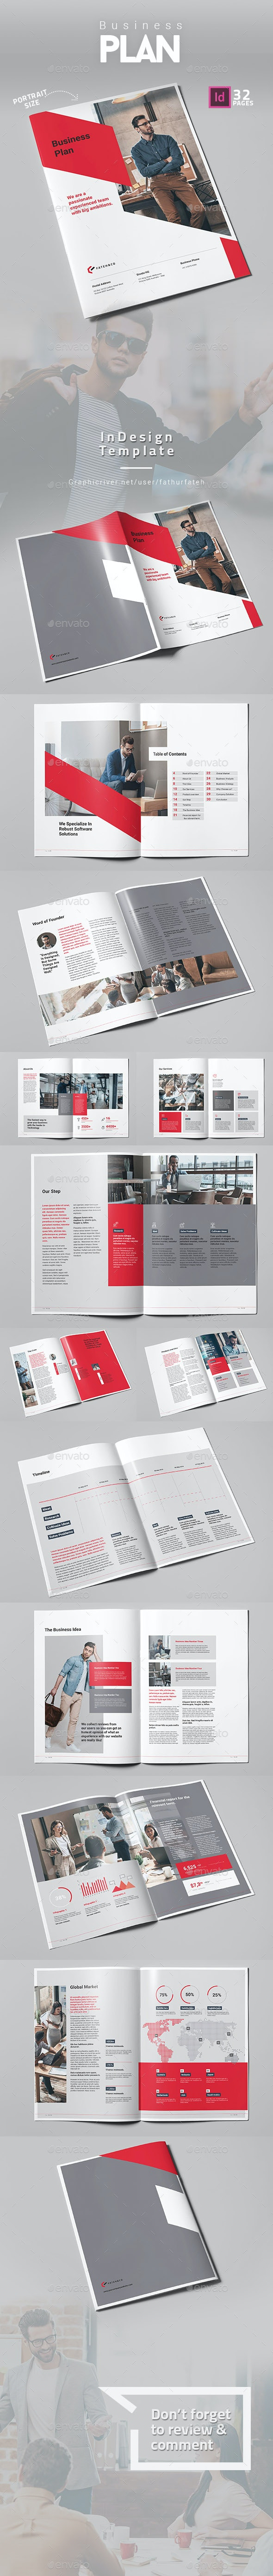 Barracuda Business Plan - Corporate Brochures